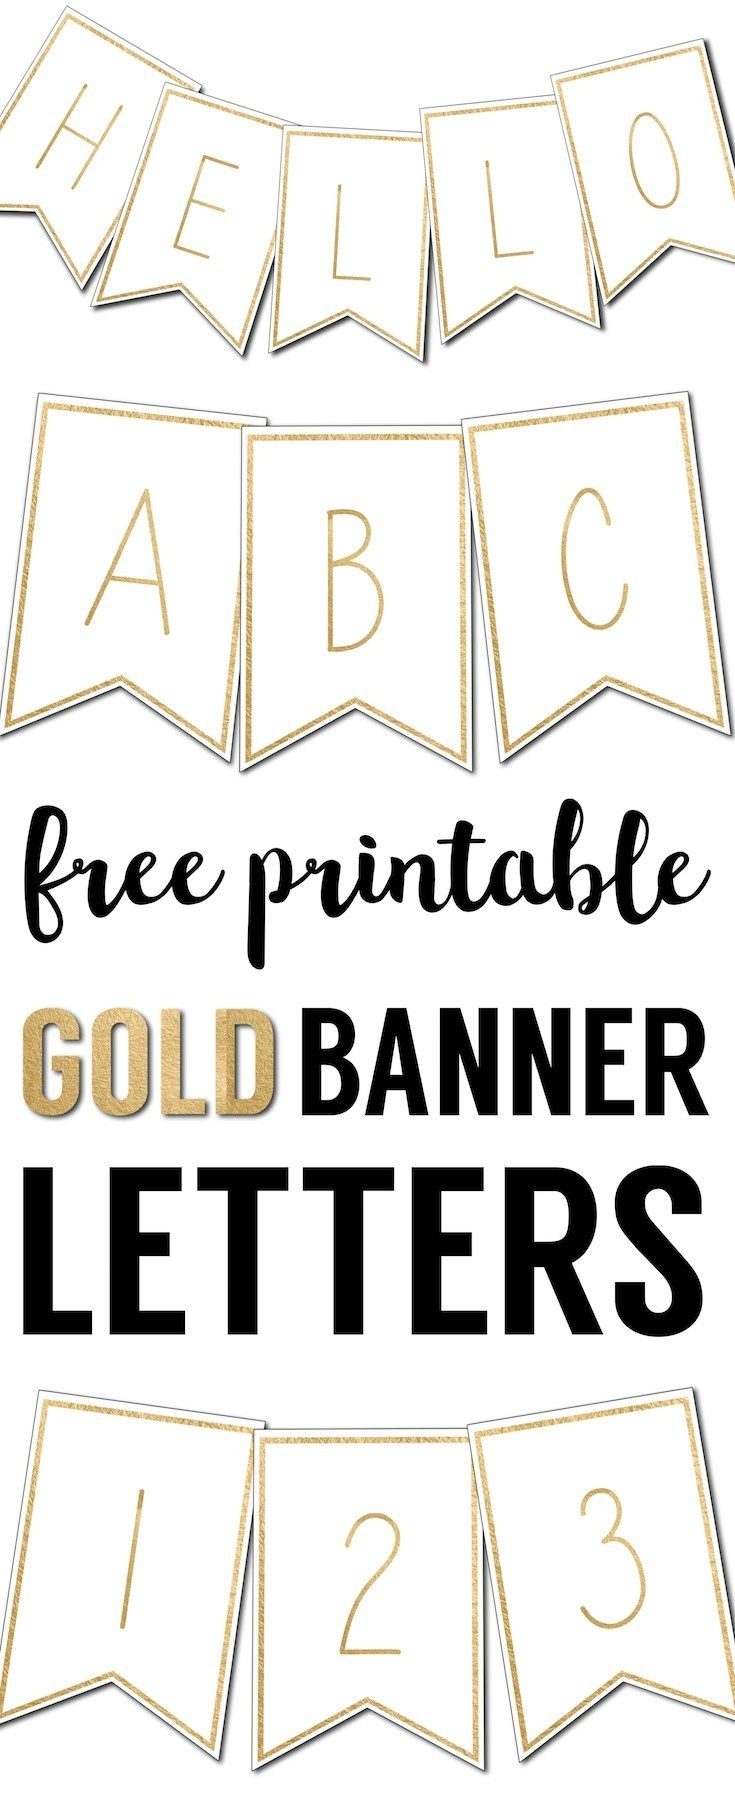 Free Printable Banner Letters Templates | The Wedding Stuff | Free - Free Printable Wedding Banner Letters